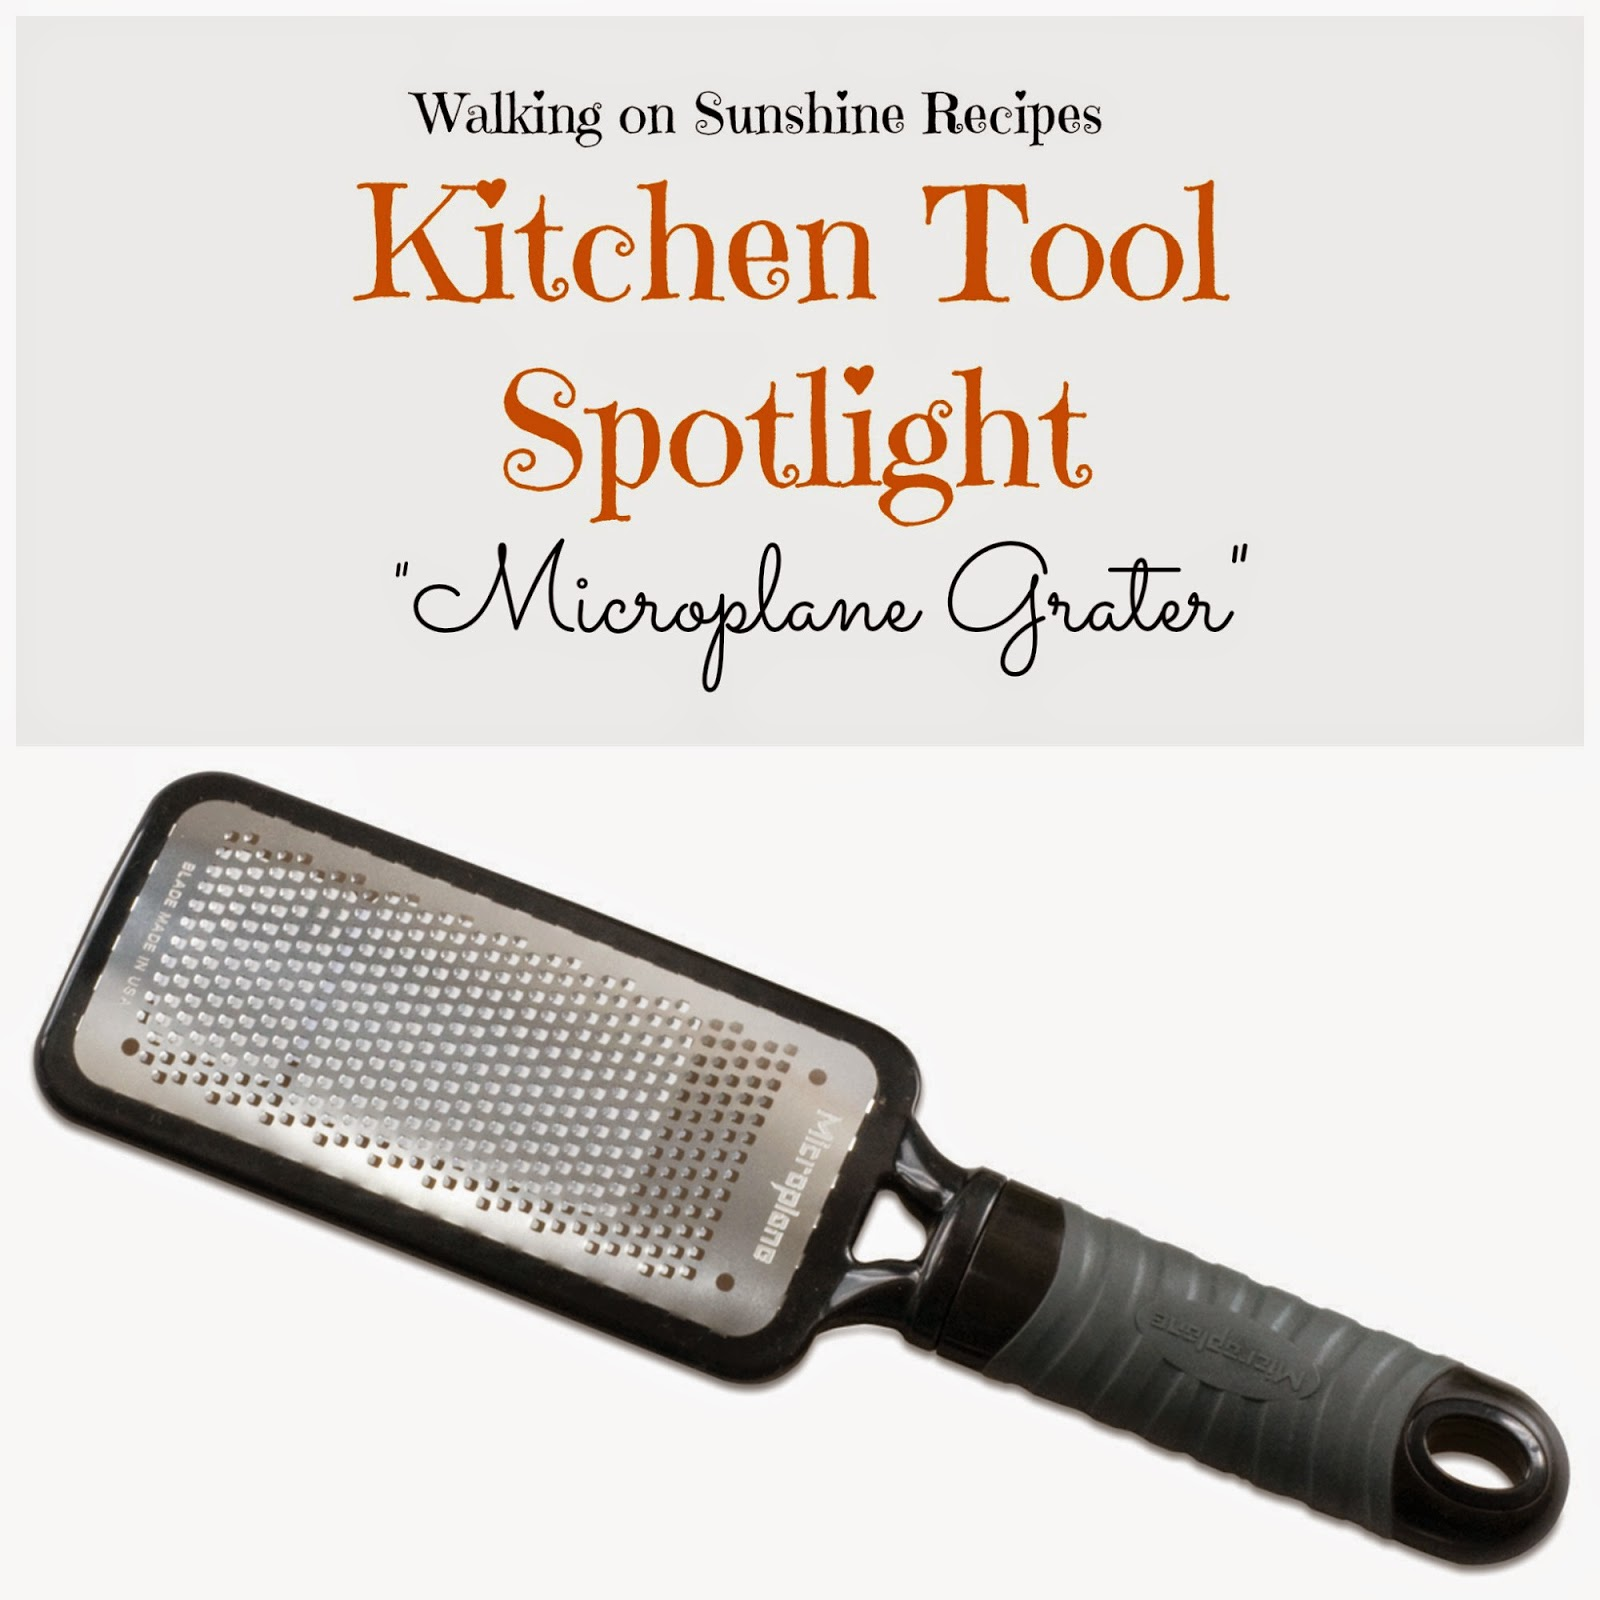 I love my microplane grater which is why I'm featuring it in our Kitchen Tool Spotlight on Walking on Sunshine Recipes today!